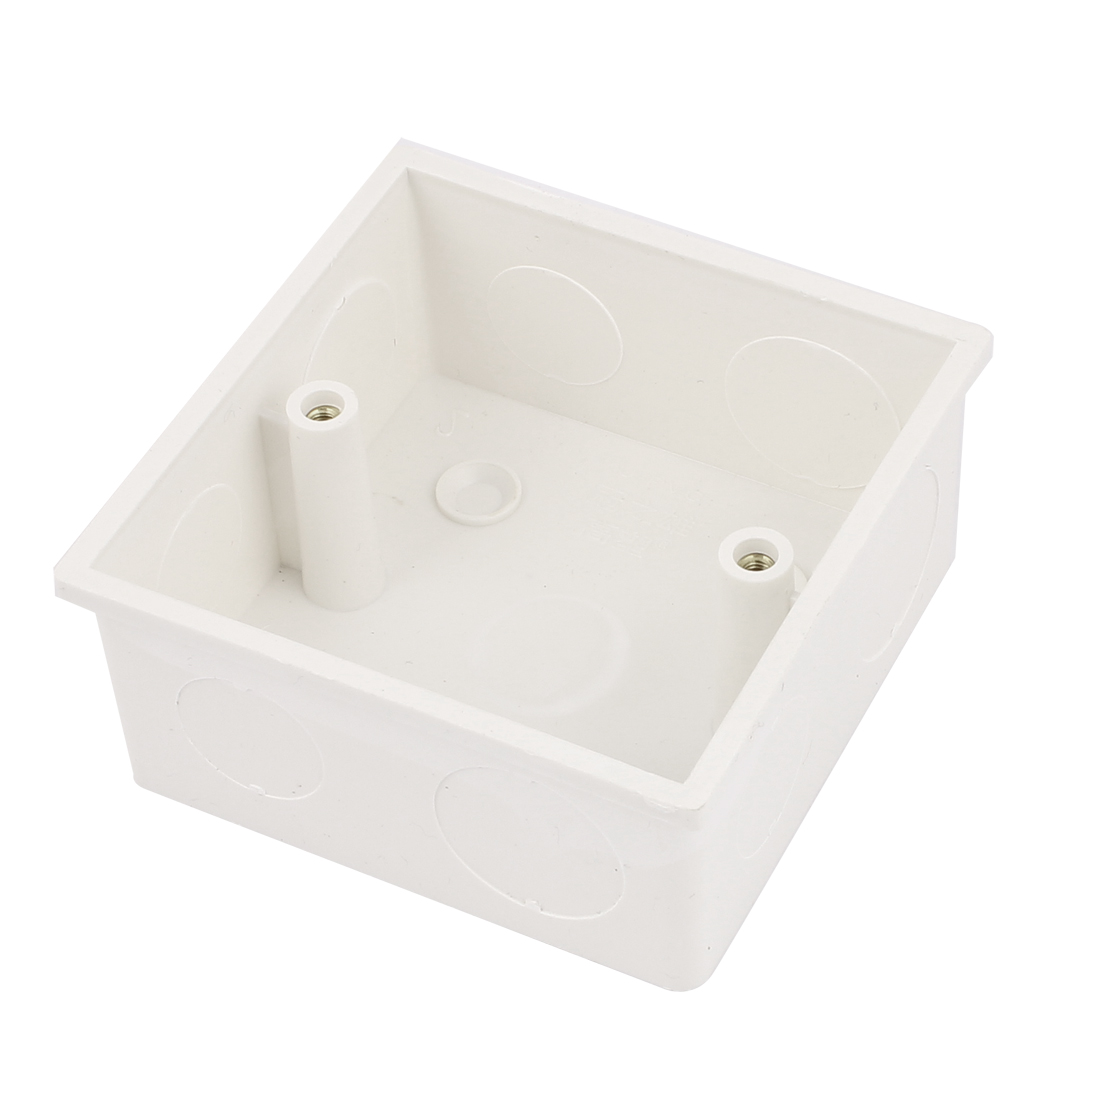 86mmx86mm Square Shape Wall Mounted Light Plastic Switch Junction Box